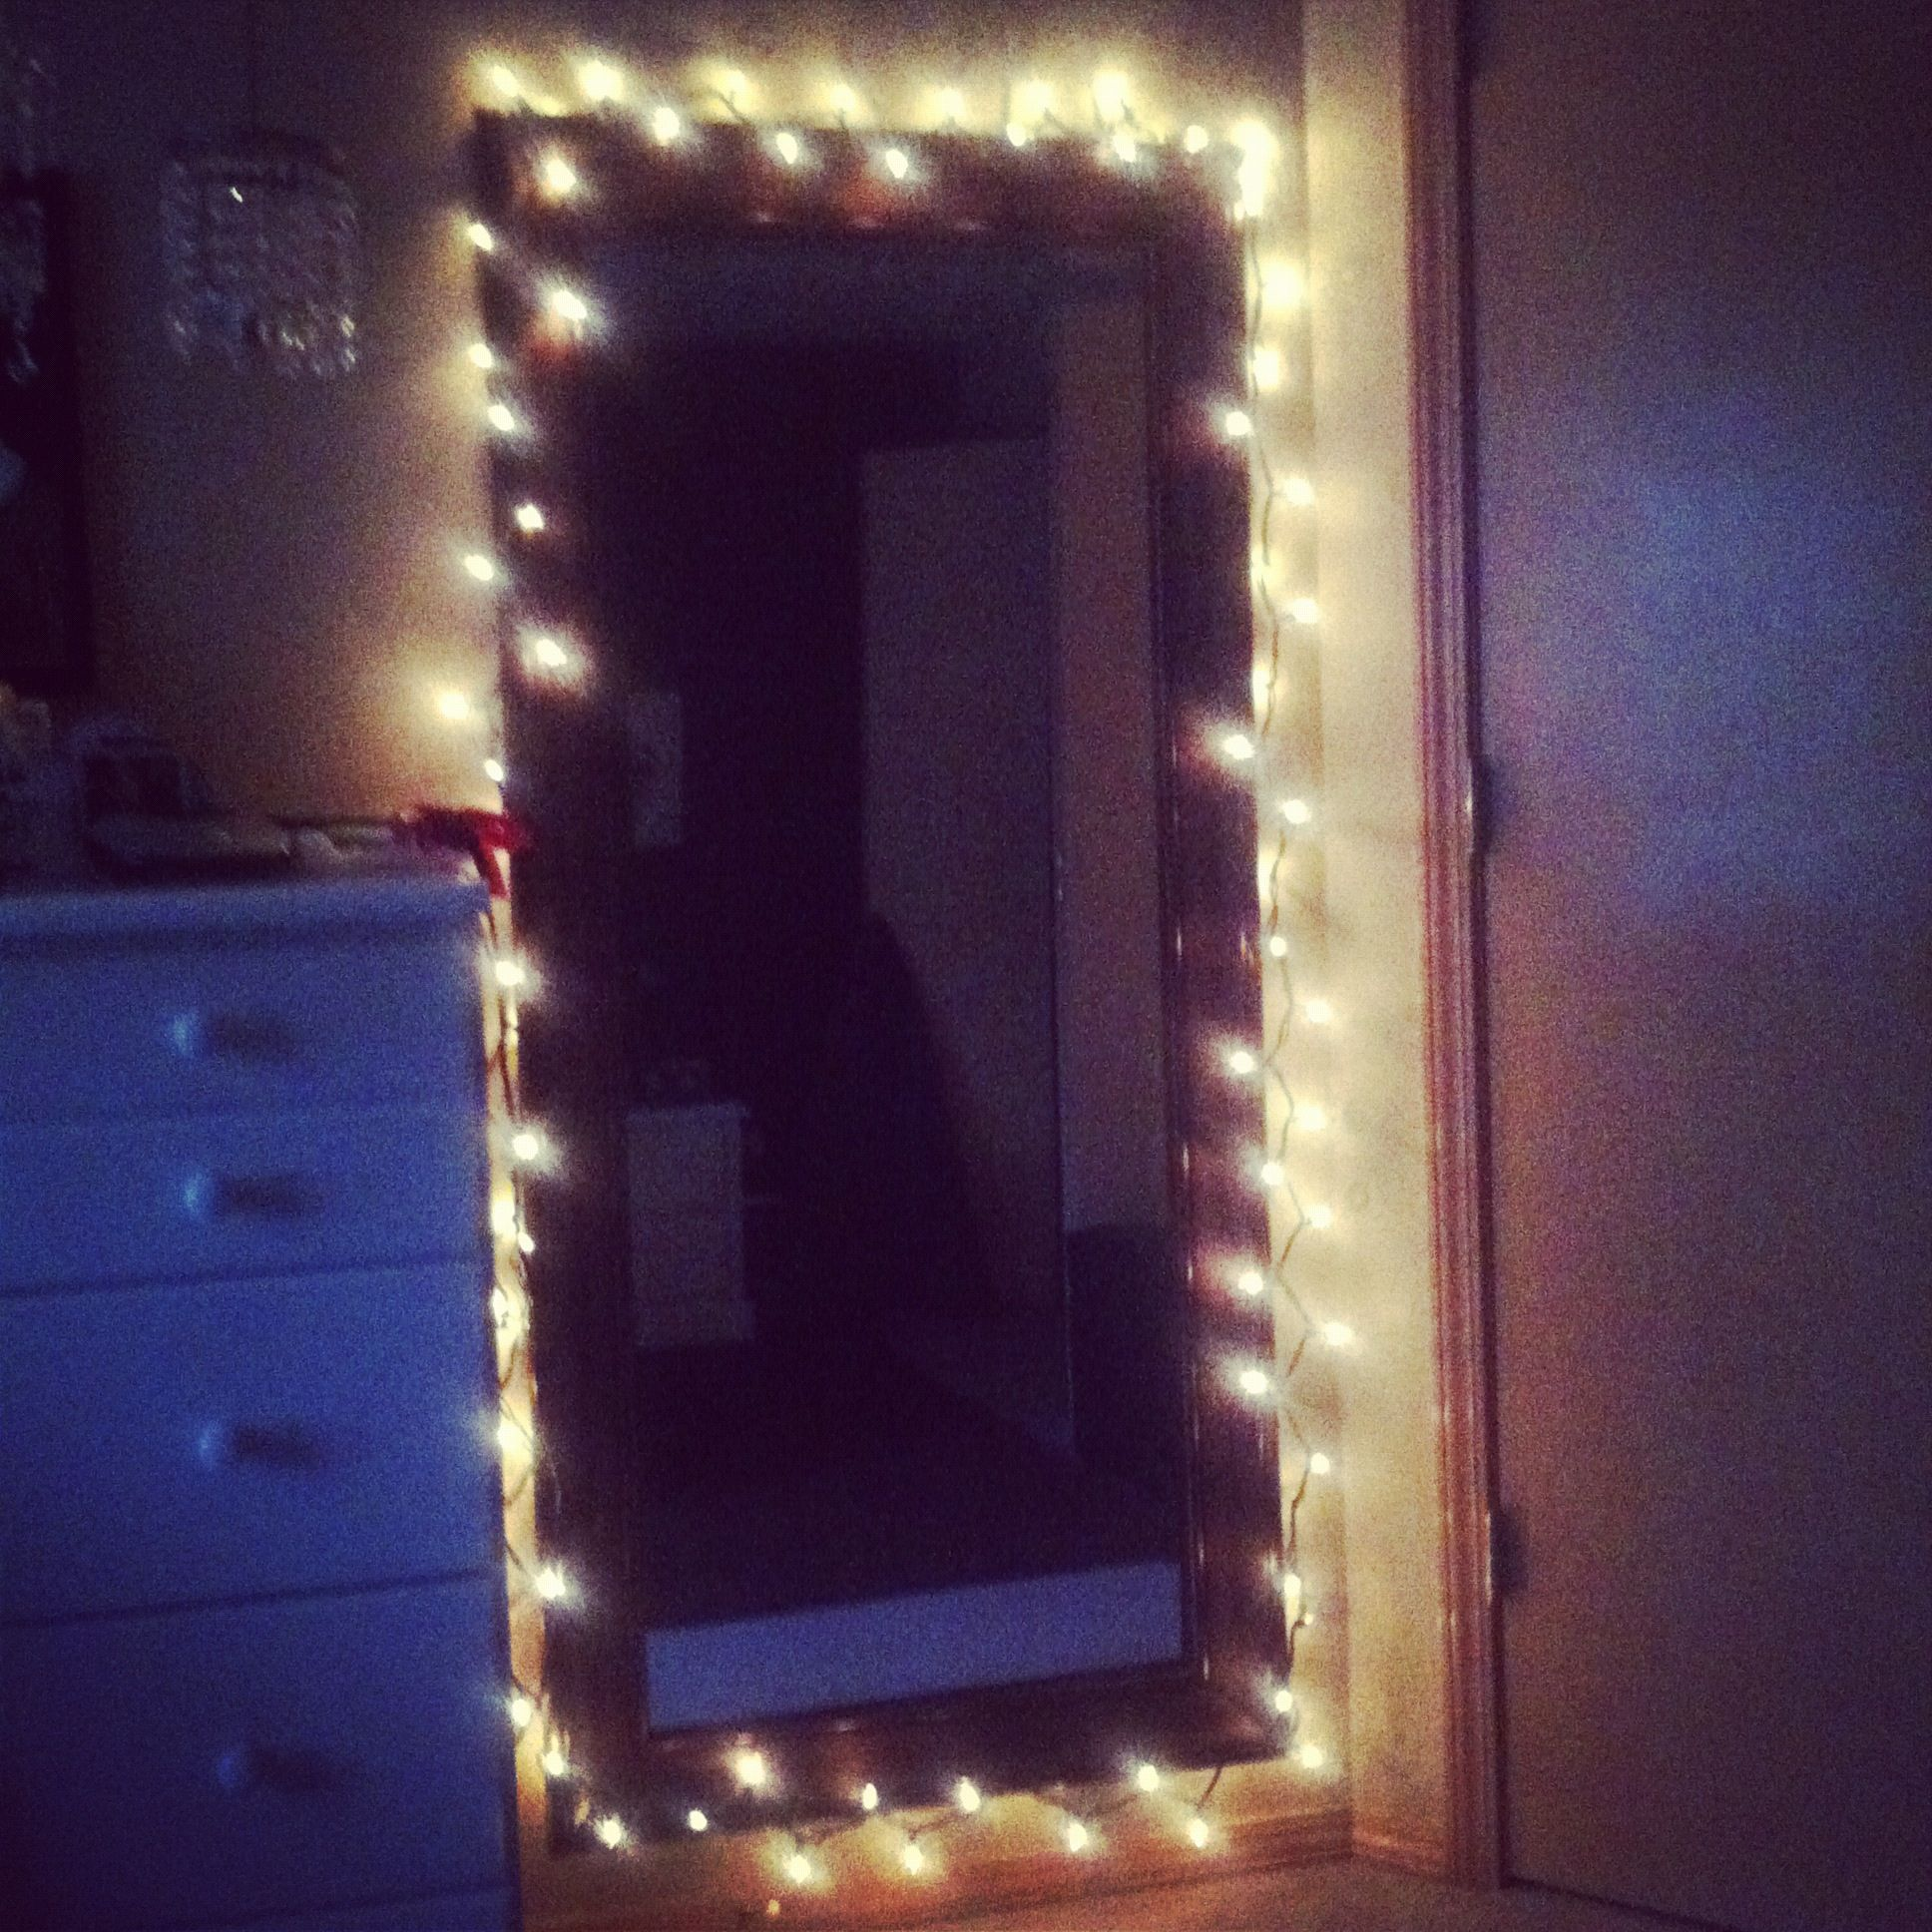 Put Simple White Christmas Lights Around My Mirror.. Gives